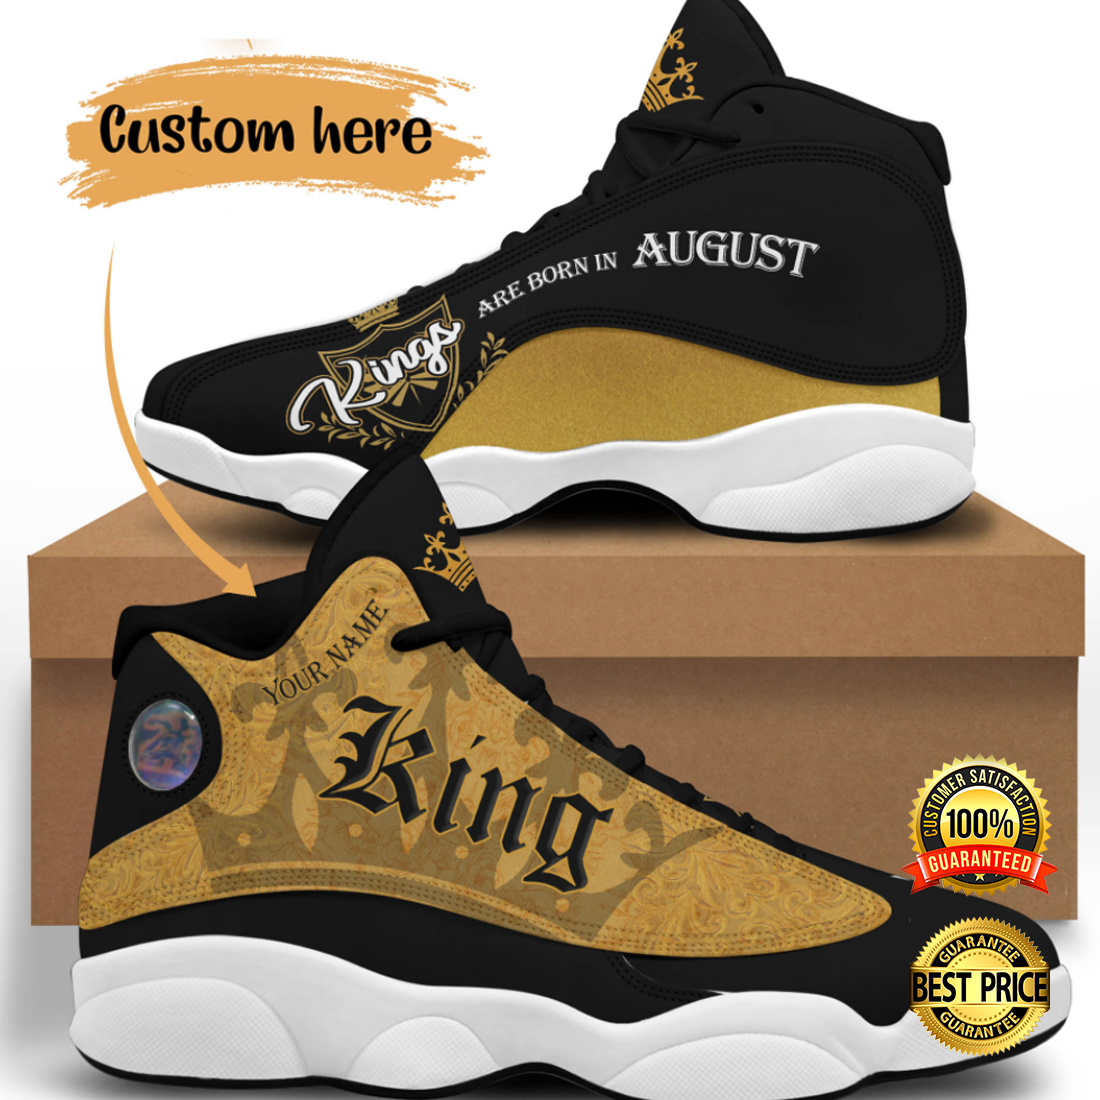 PERSONALIZED KINGS ARE BORN IN AUGUST JORDAN 13 SHOES 6